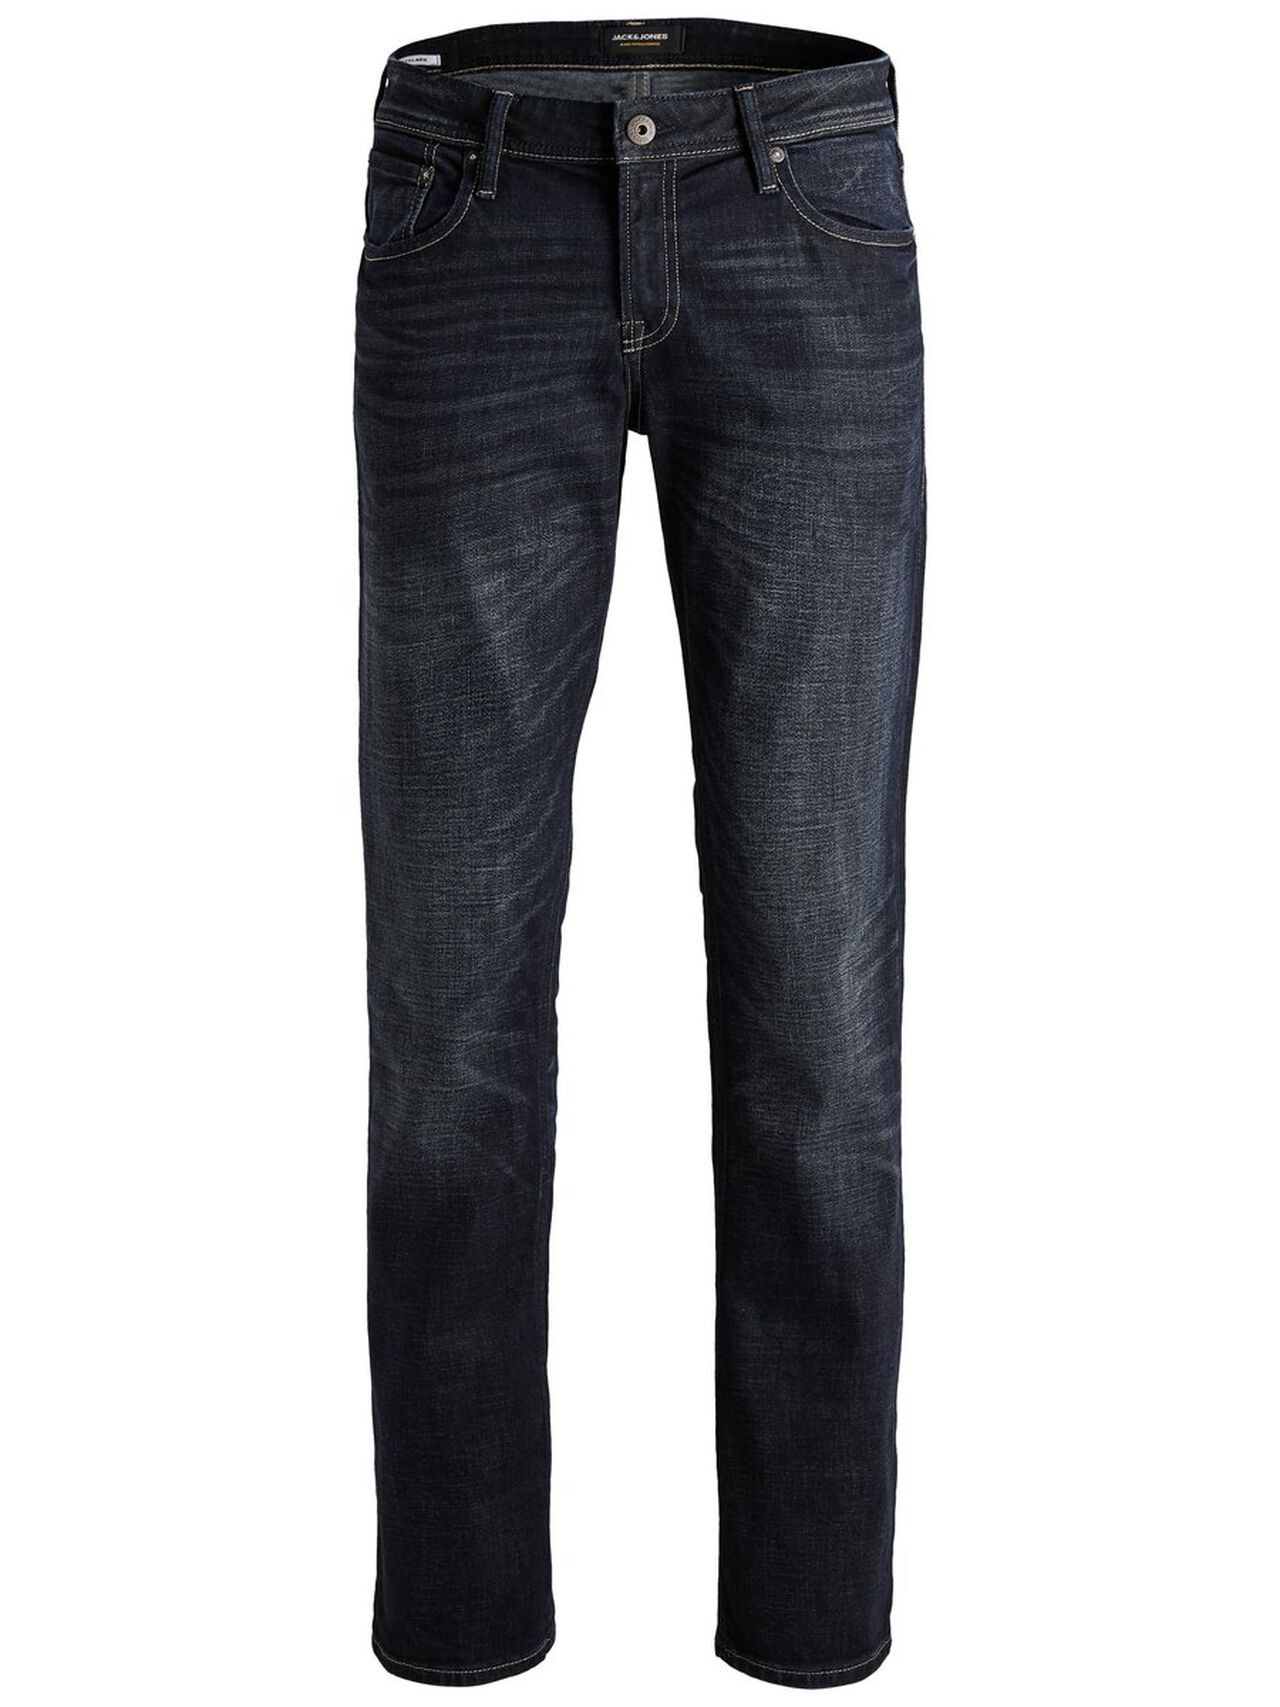 Clark Original Am 836 Regular Fit Jeans